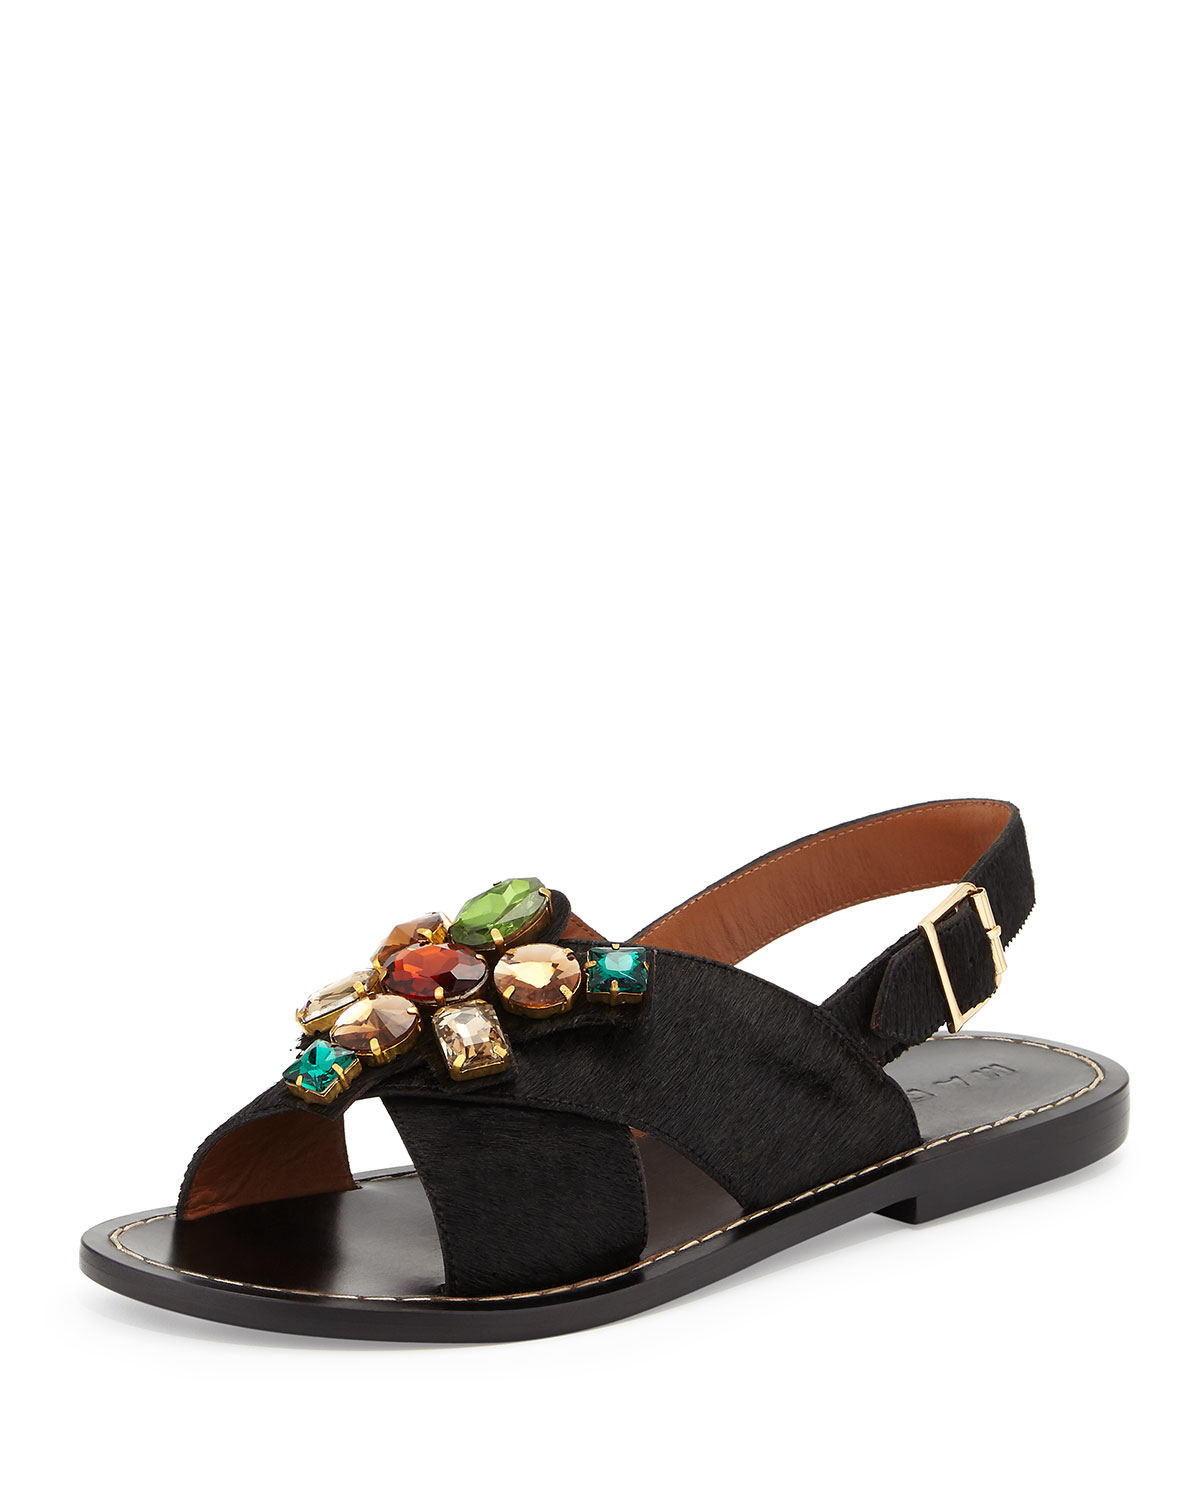 72dacbdf4 Marni Jeweled Calf-Hair Flat Sandal